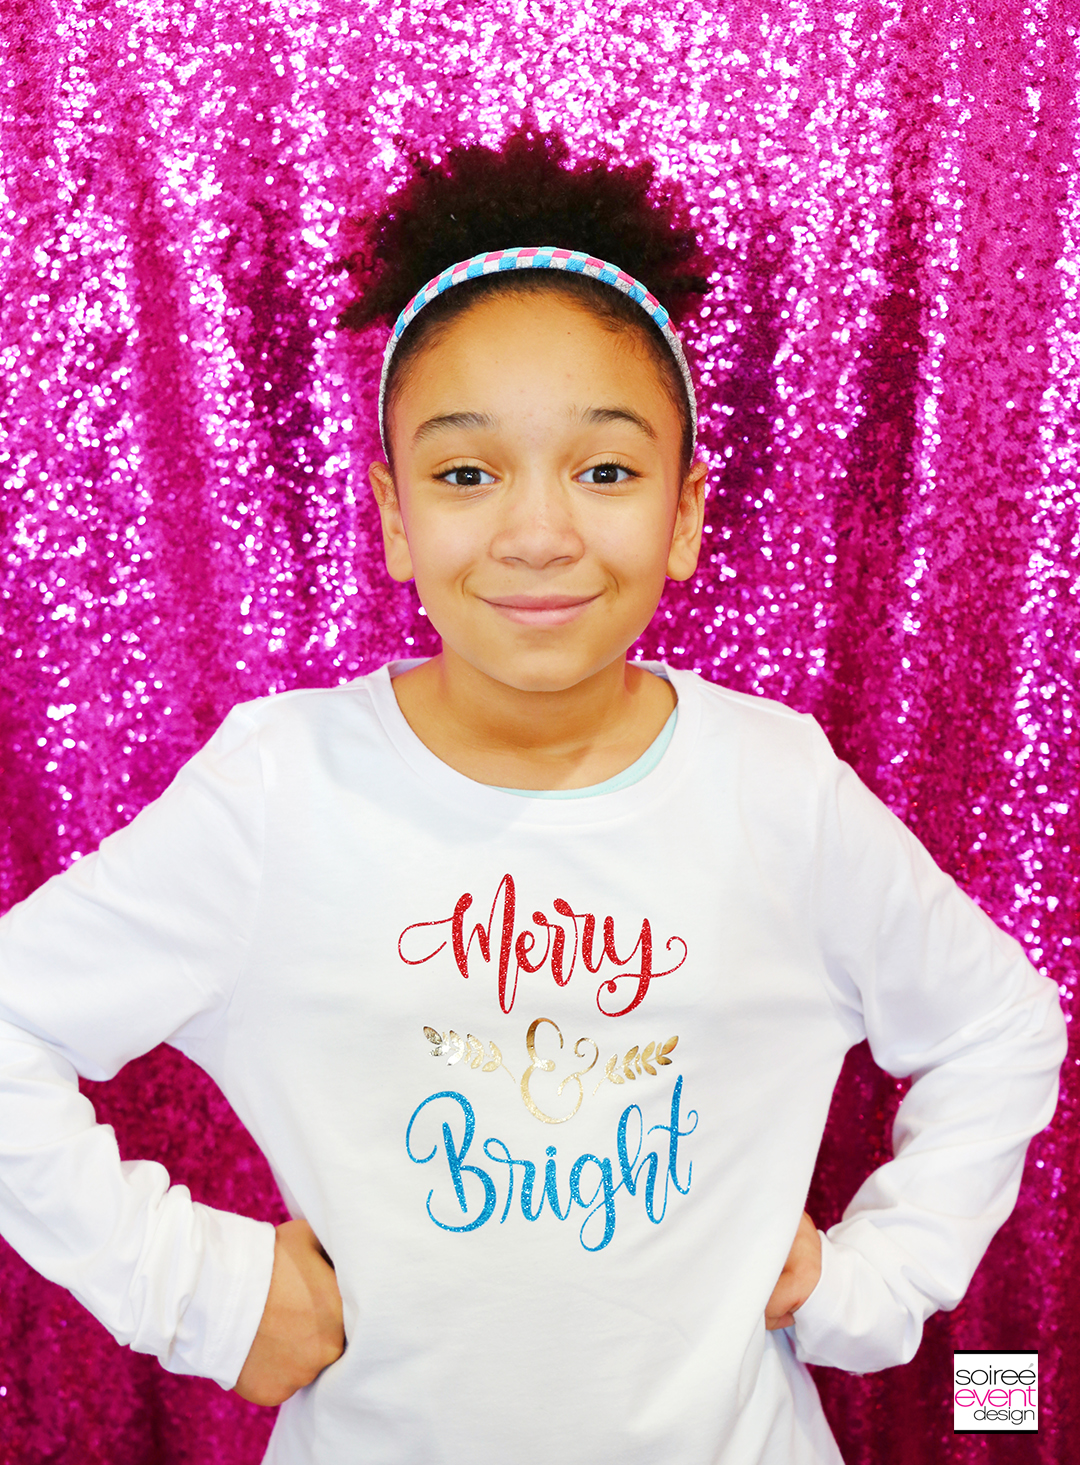 Merry and Bright Tshirt with Cricut